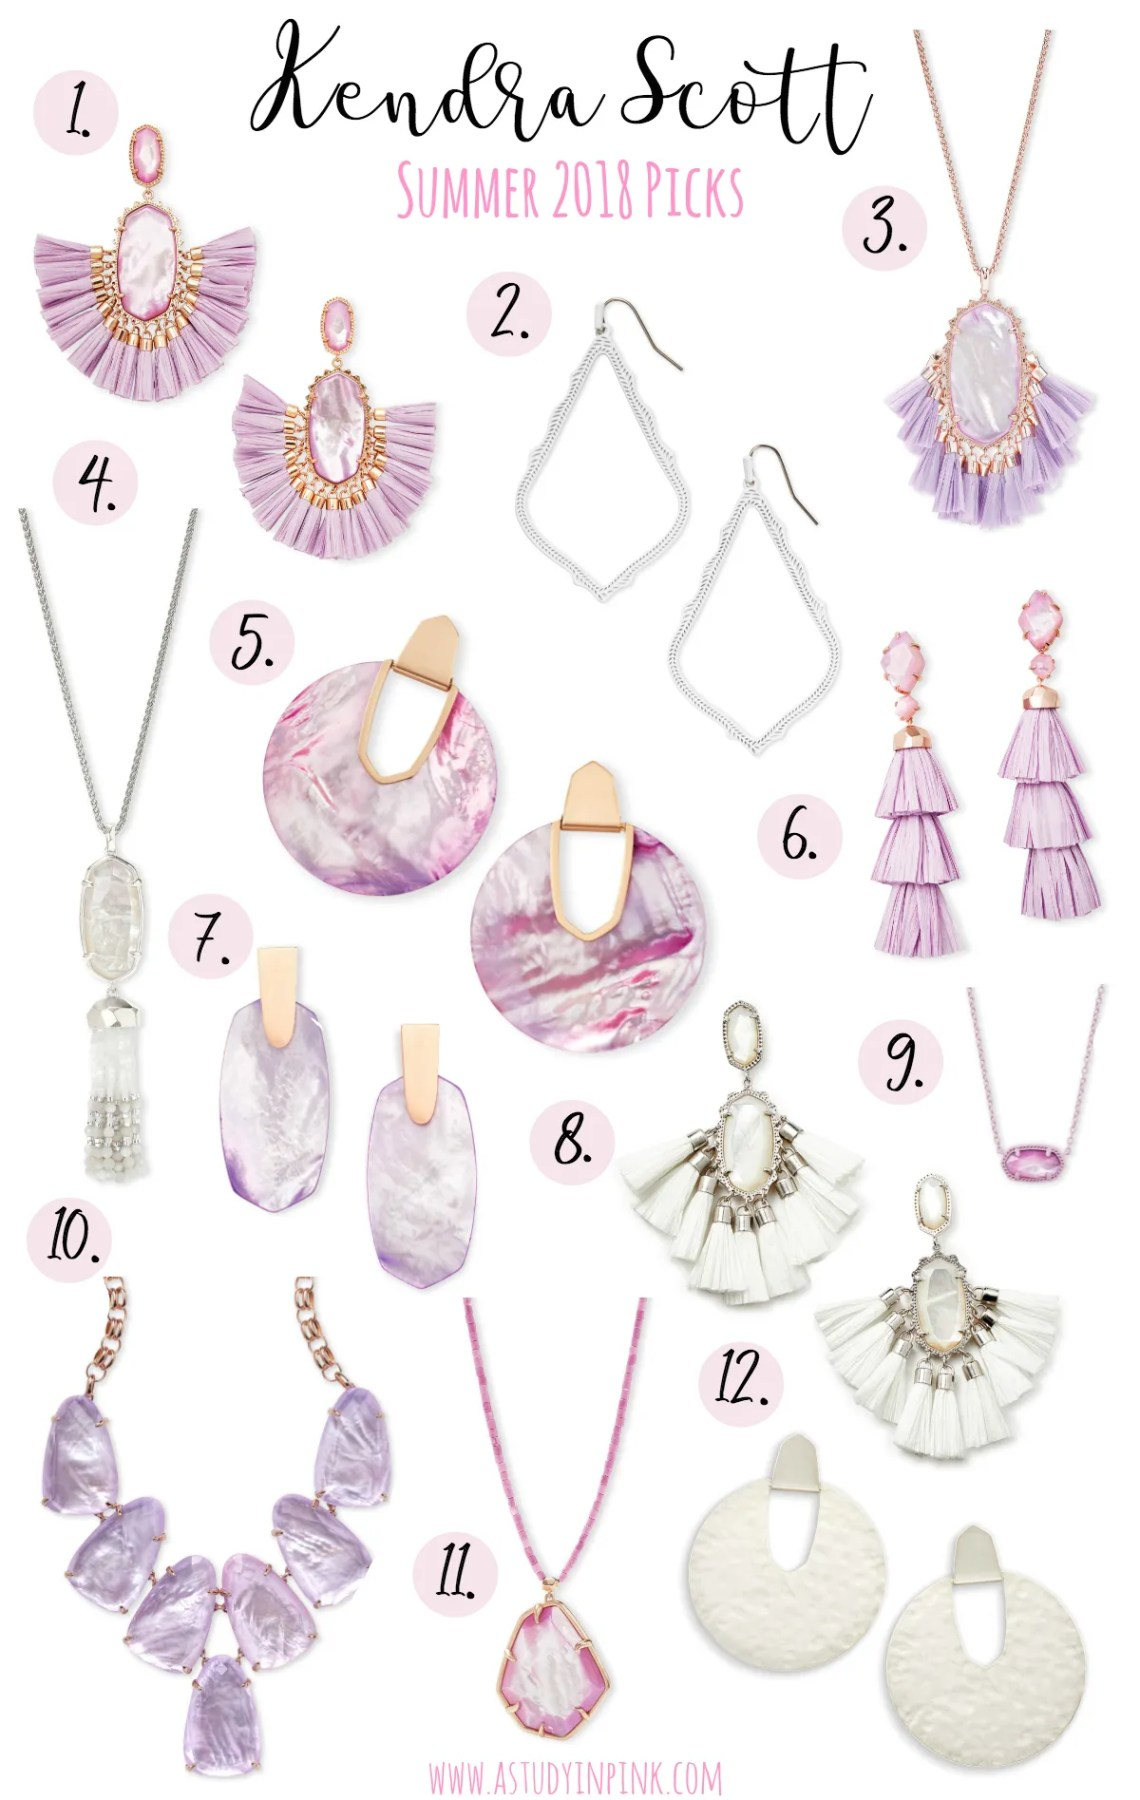 67b87fa04 Cristina Rose Gold Statement Earrings In Lilac Mother Of Pearl – $195. Okay  y'all, these are just so fabulous I can't even handle it. They're feminine,  fun, ...